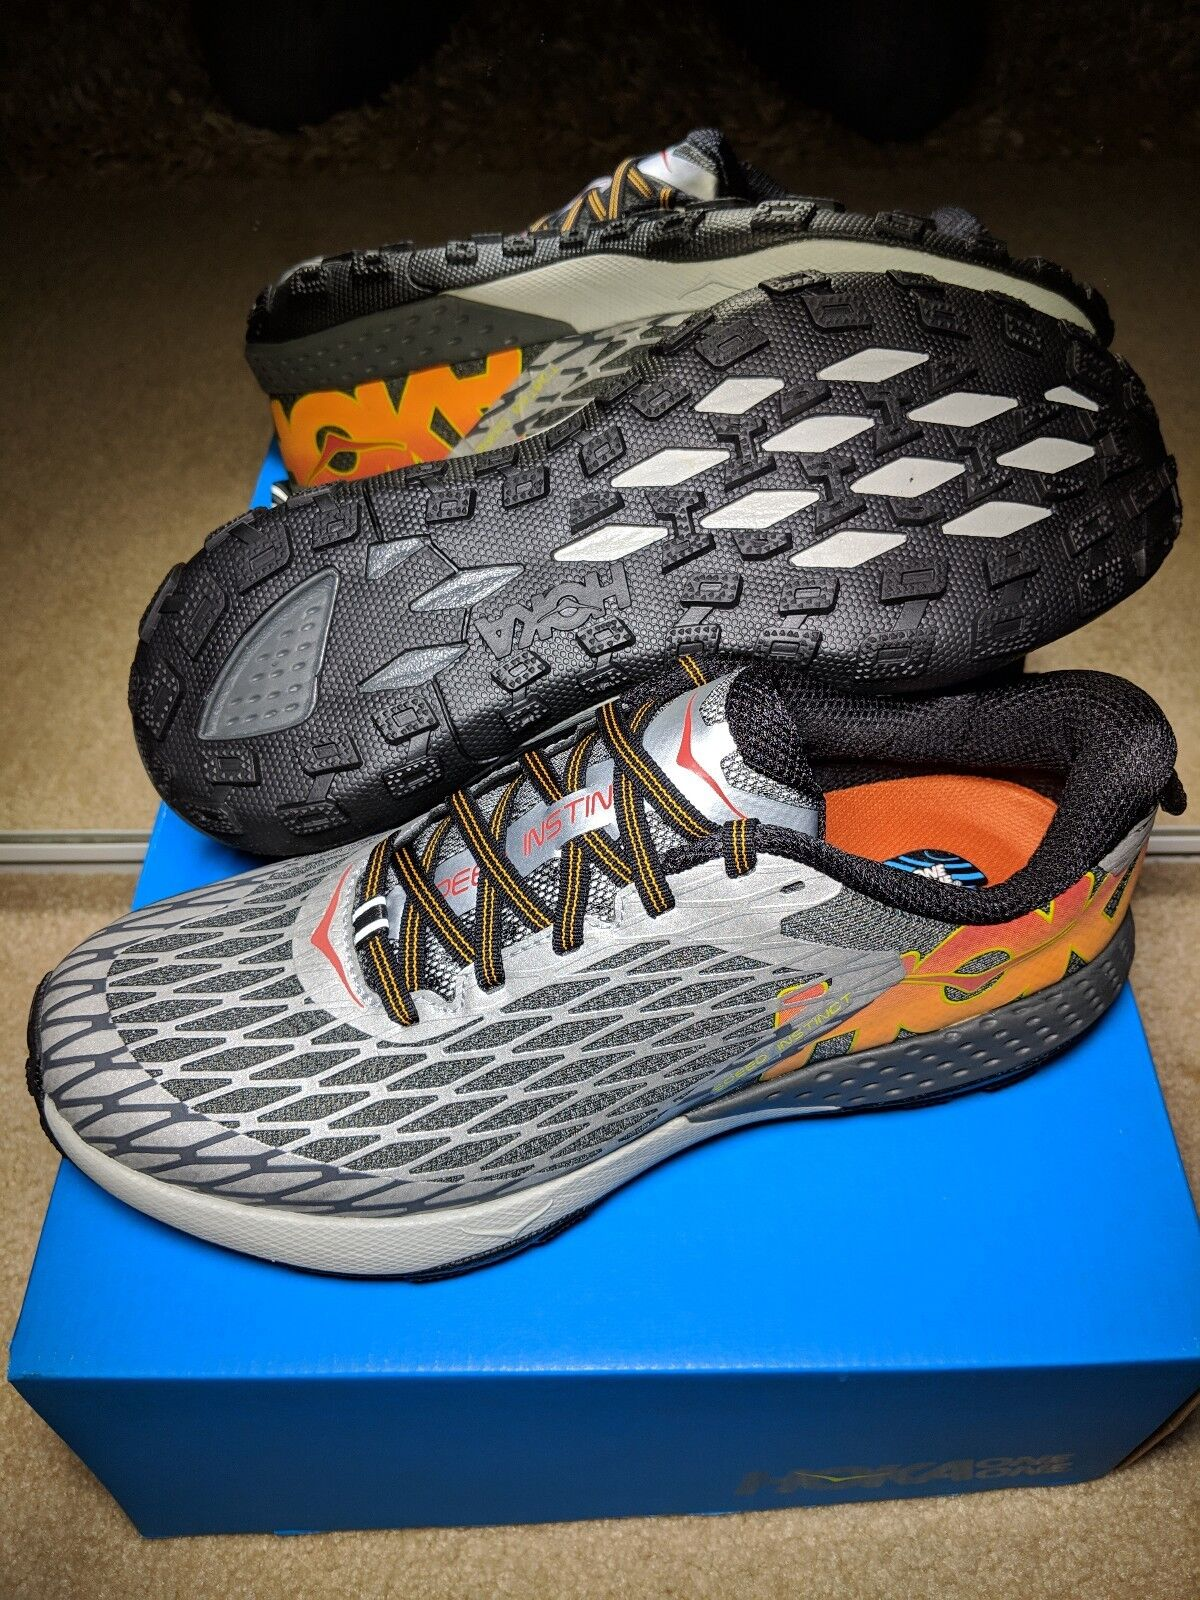 NEW IN BOX HOKA ONE ONE MEN'S 8 SPEED INSTINCT SILVER   CAYANNE FREE SHIPPING